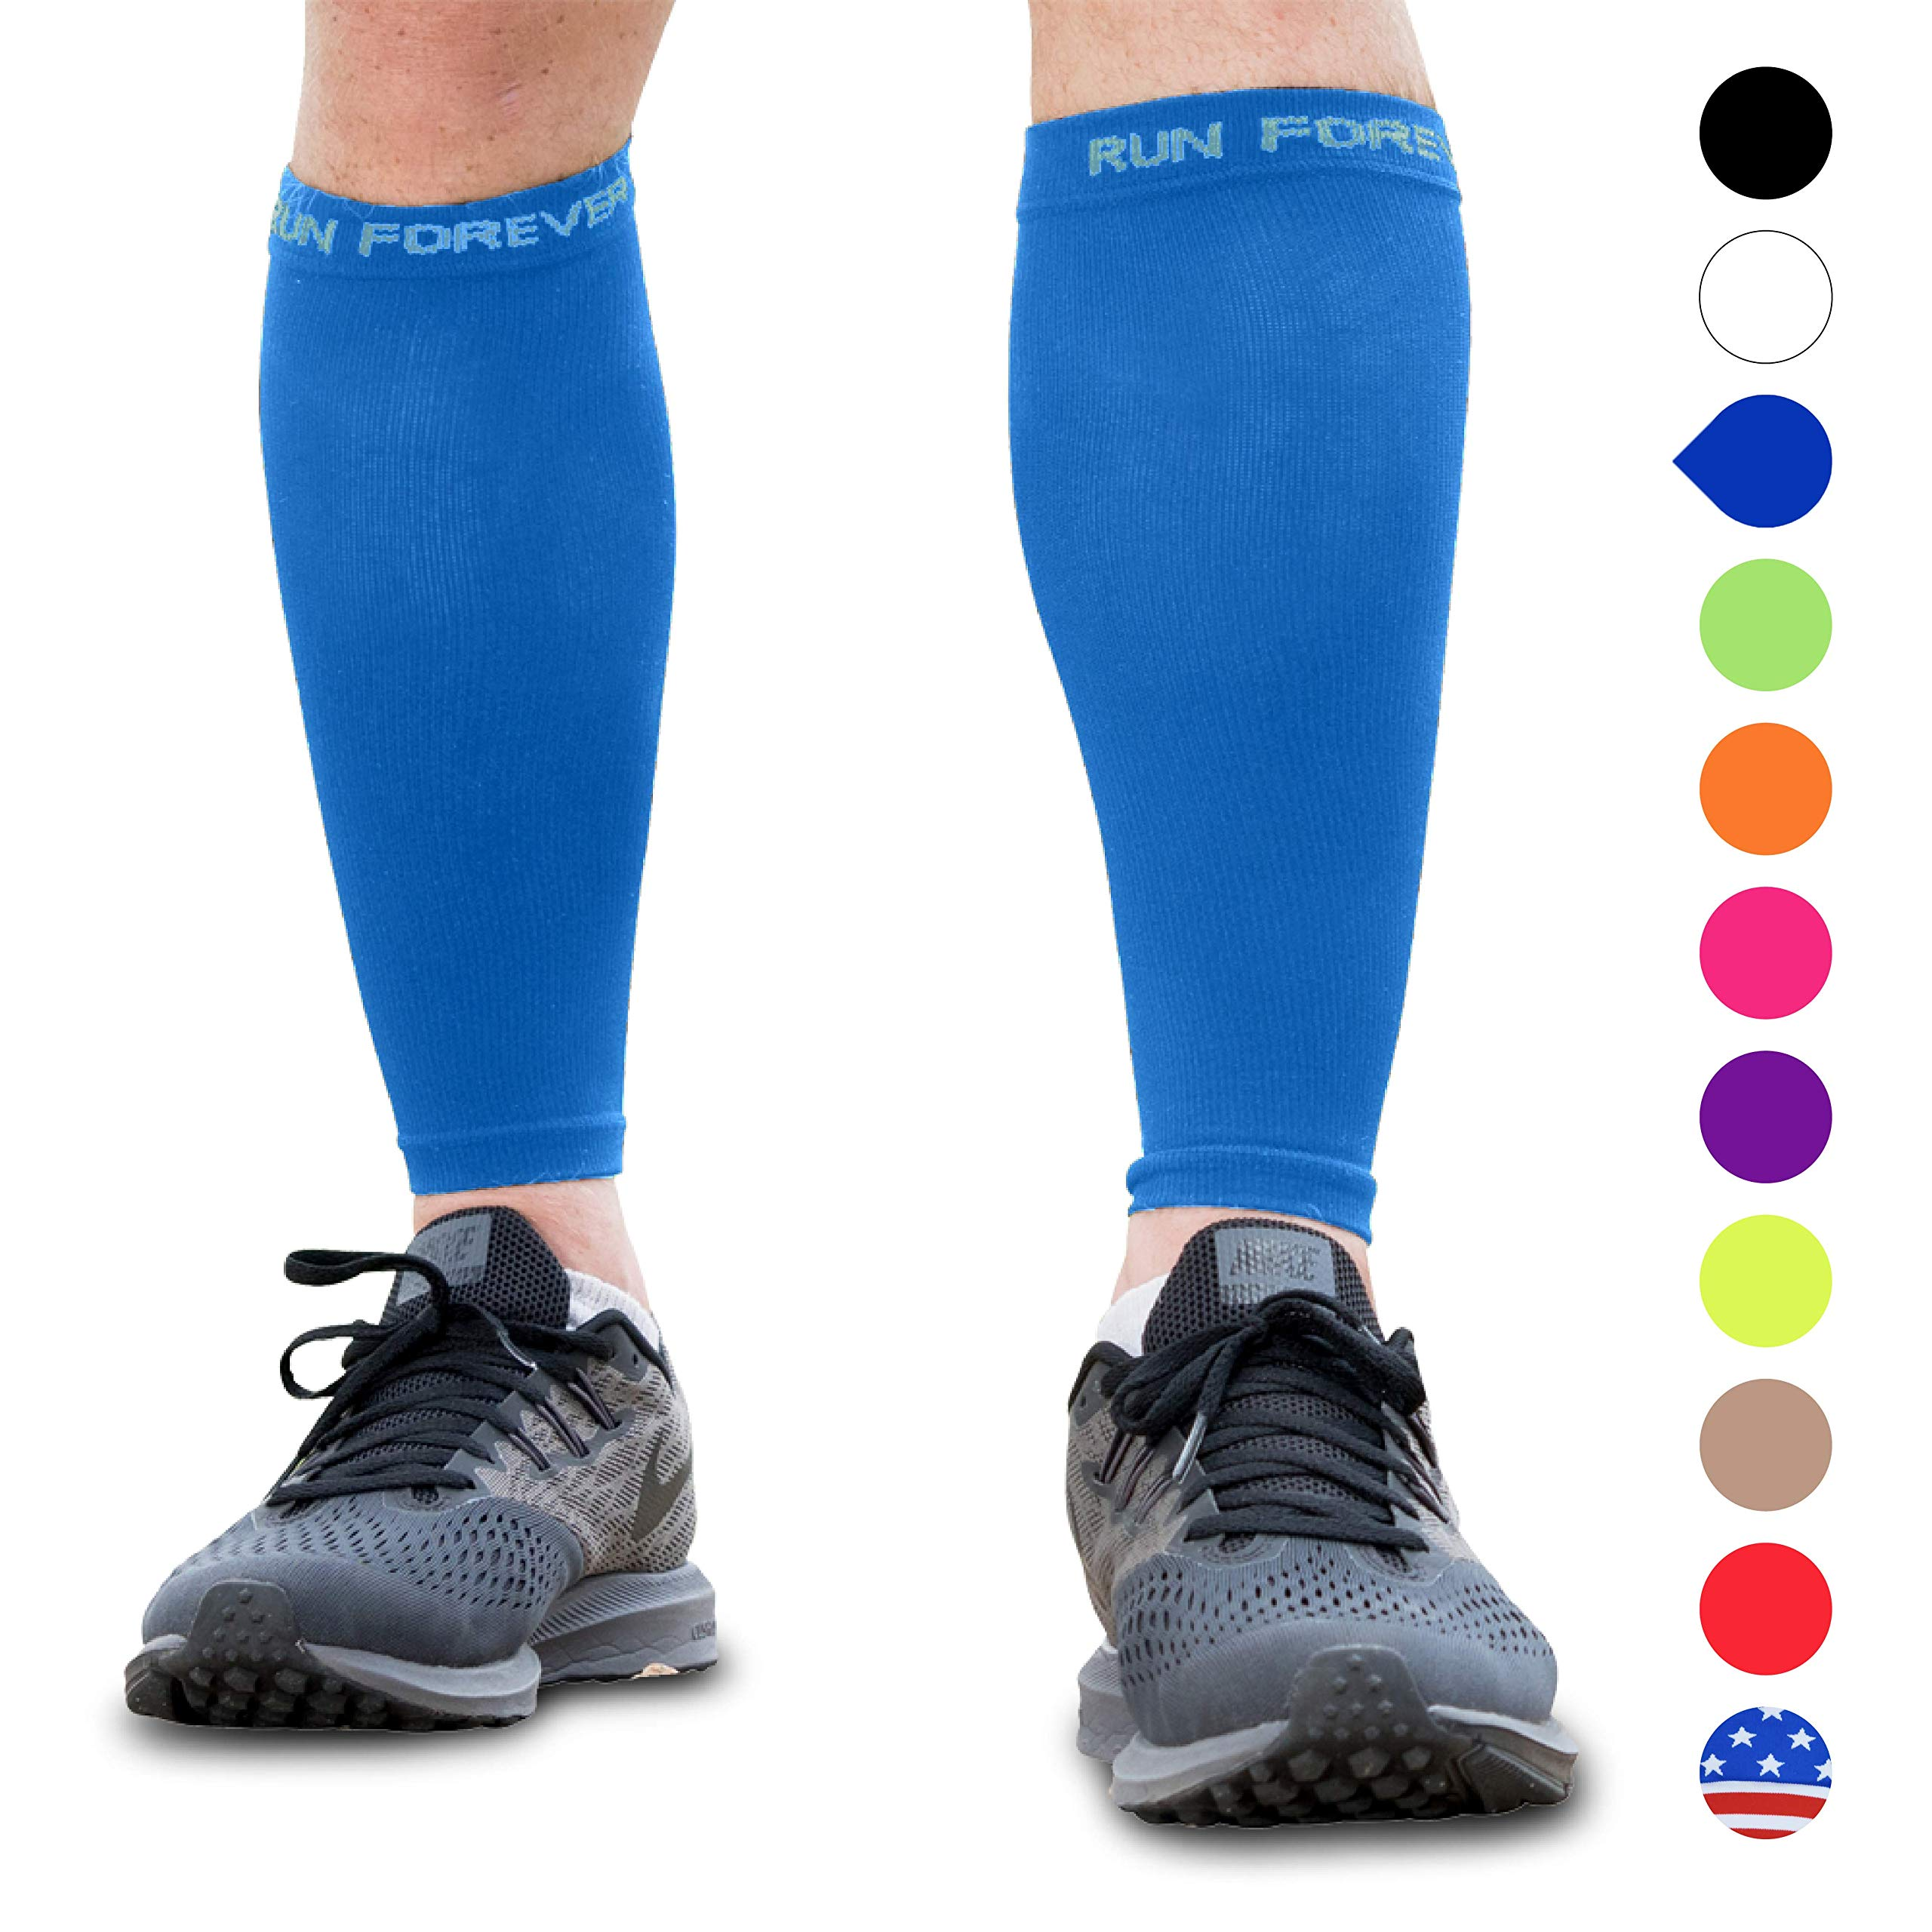 Calf Compression Sleeves - Leg Compression Socks for Runners, Shin Splint, Varicose Vein & Calf Pain Relief - Calf Guard Great for Running, Cycling, Maternity, Travel, Nurses (Blue, Small) by Run Forever Sports